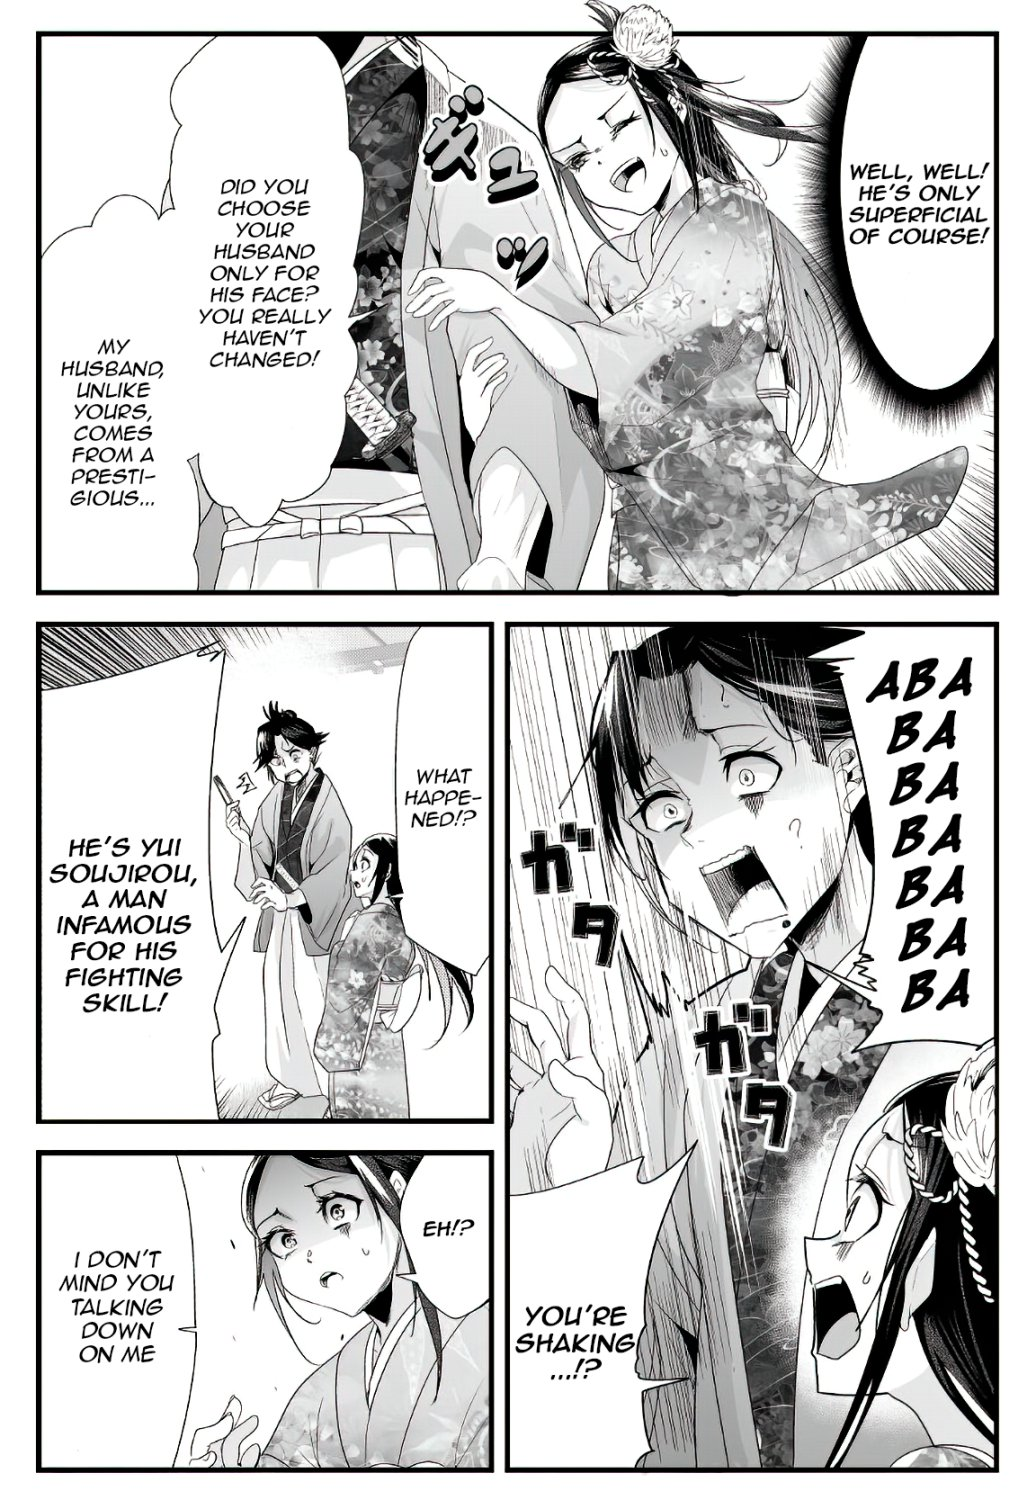 My New Wife is Forcing Herself to Smile - chapter 21.2 - #2